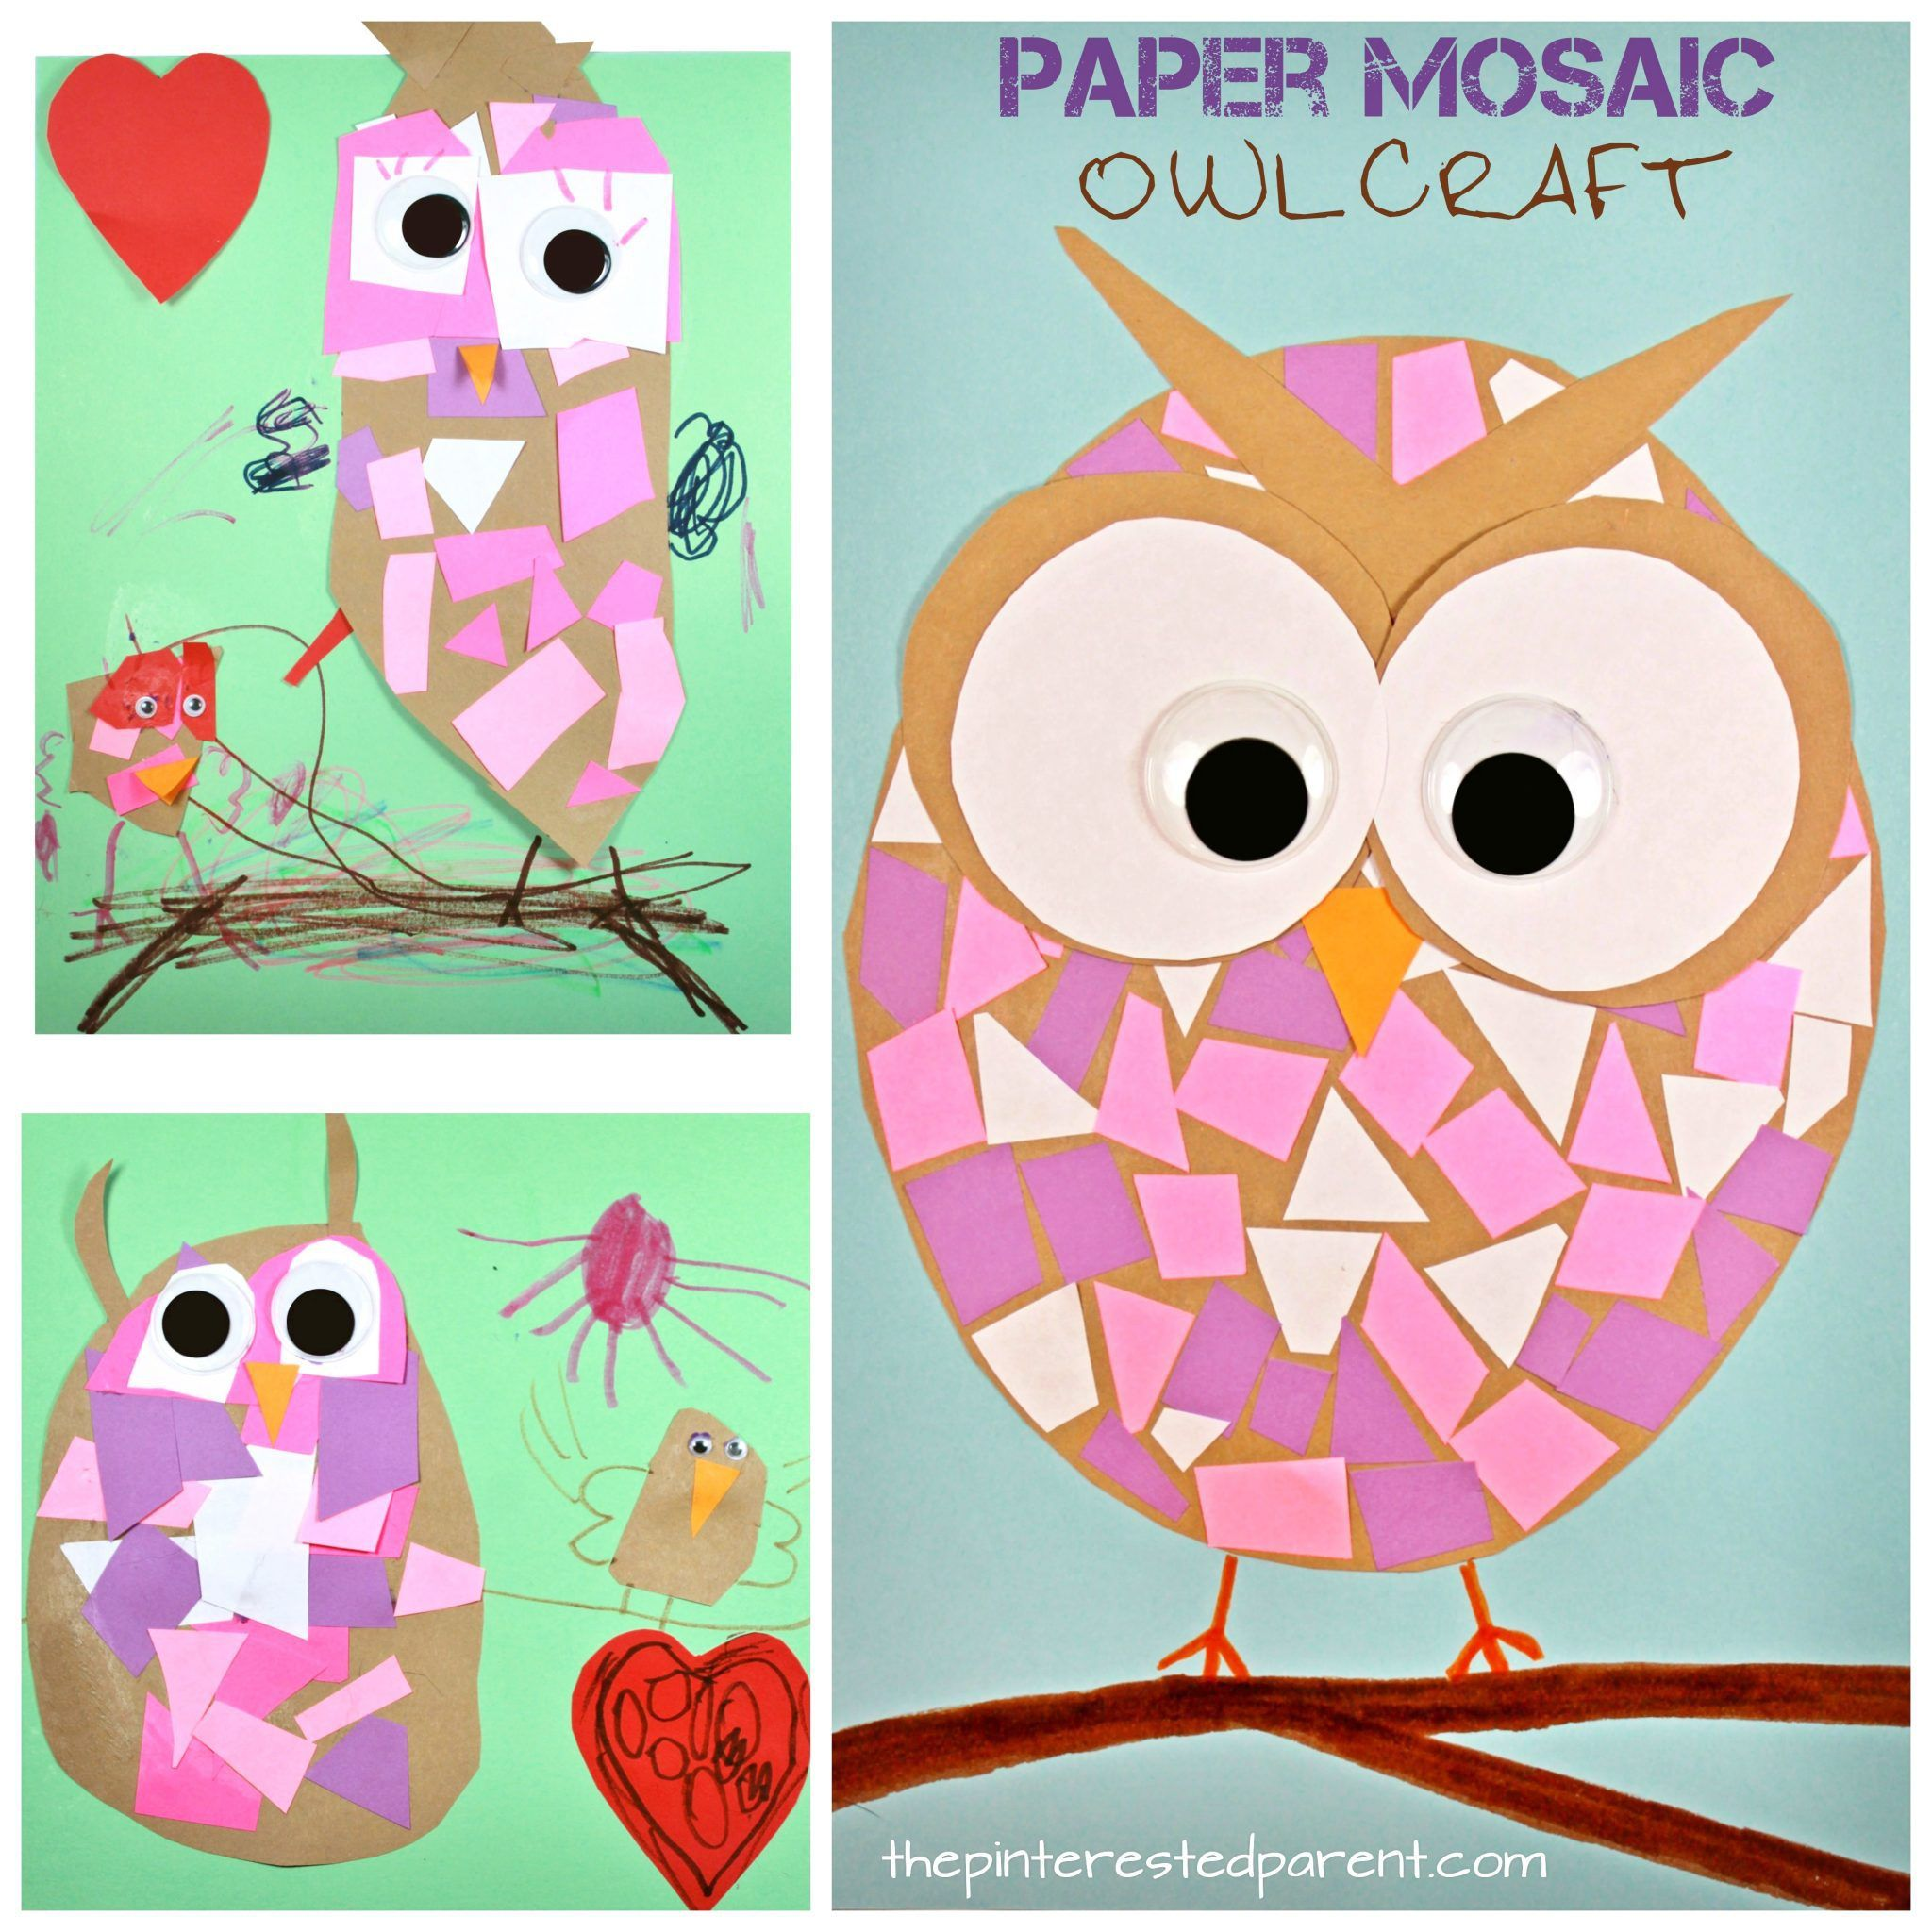 Construction Paper Mosaic Owl Craft